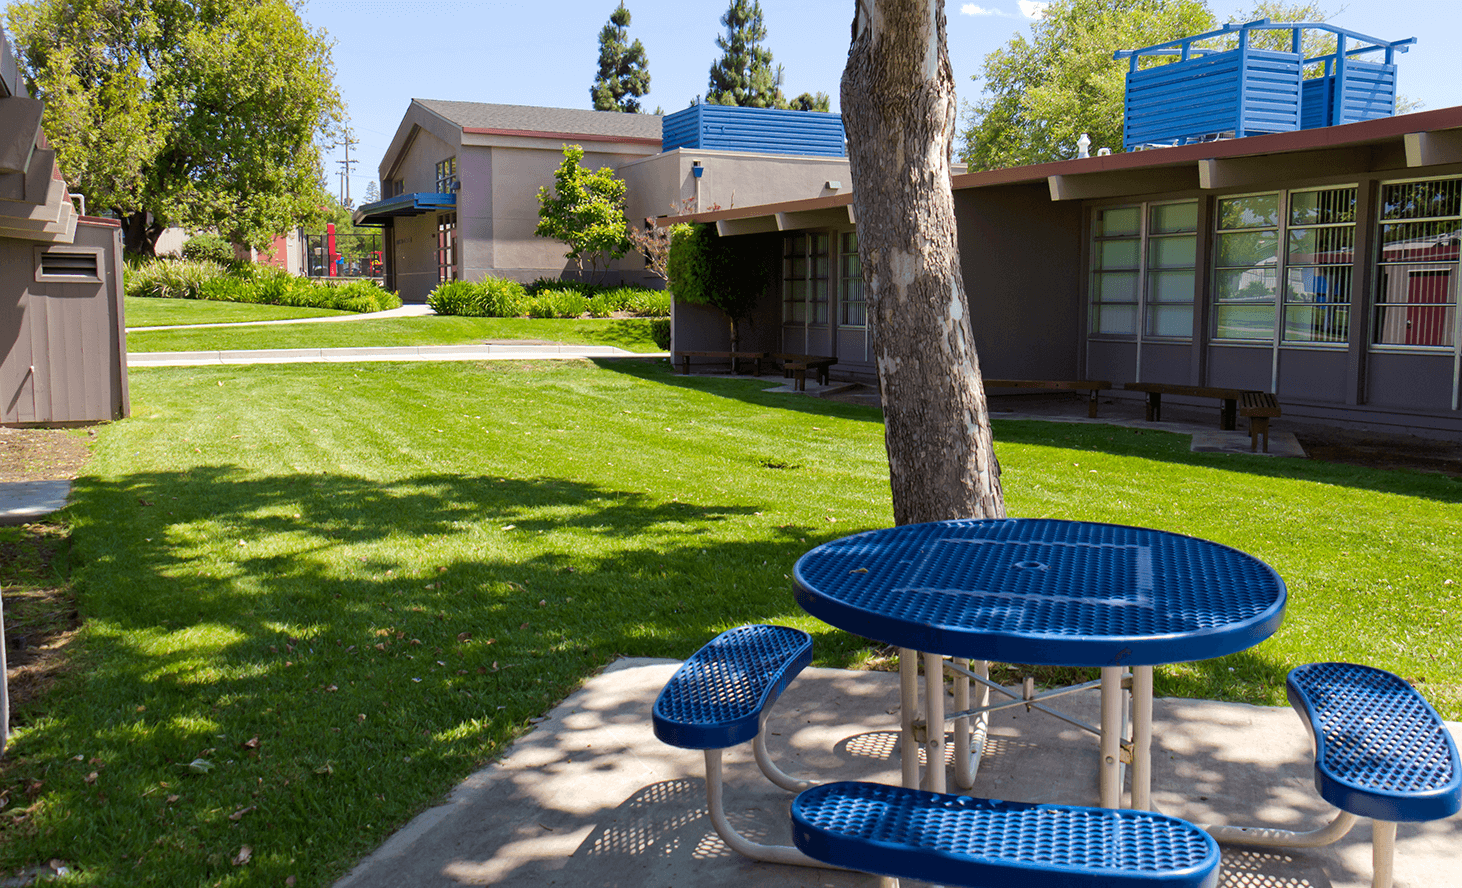 Campus Exterior | Challenger School - Harwood | Private School In San Jose, California